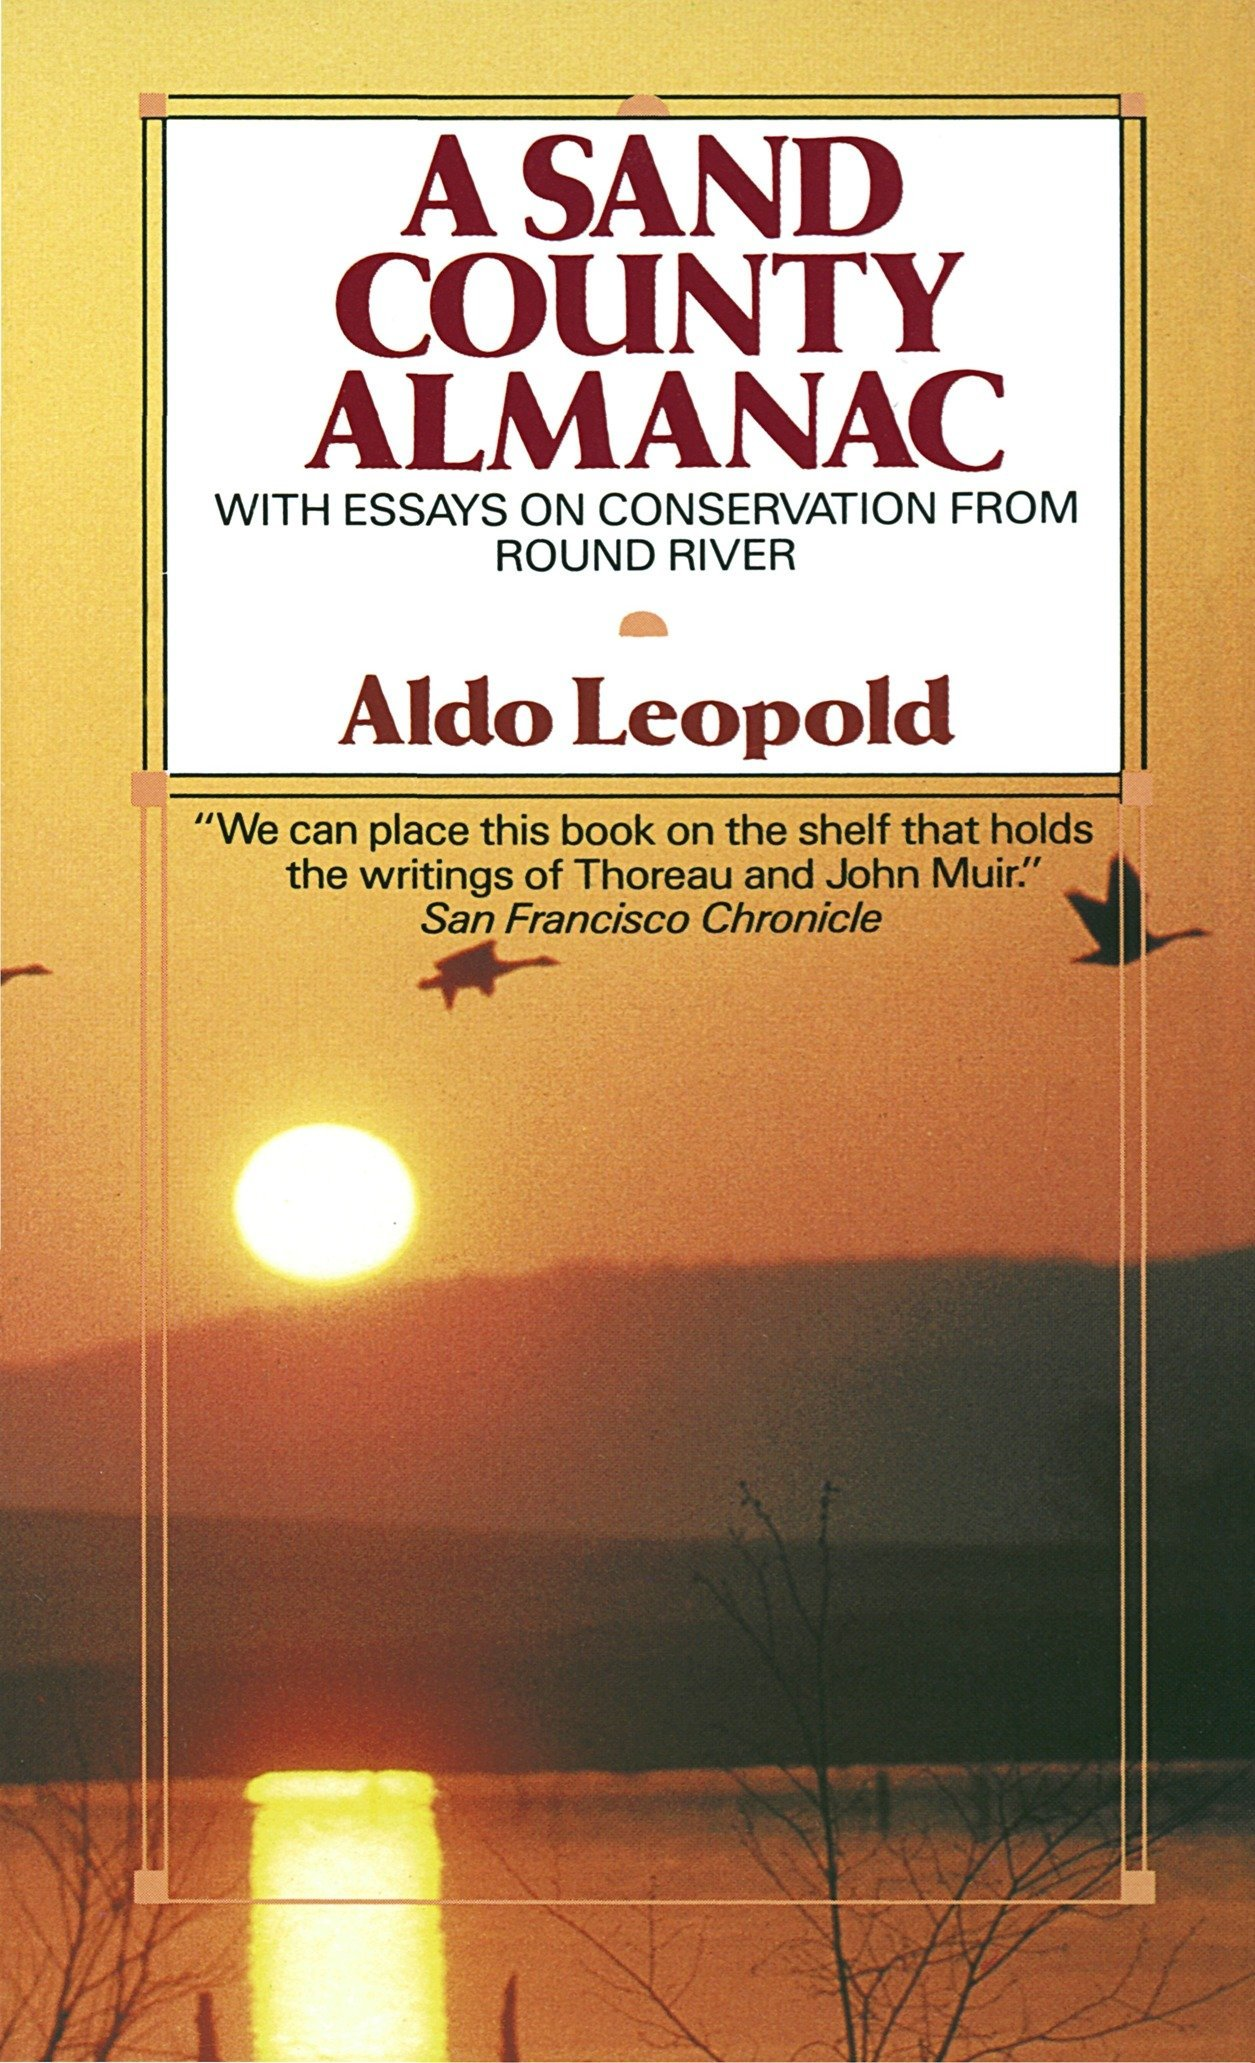 With Essays on Conservation from Round River A Sand County Almanac